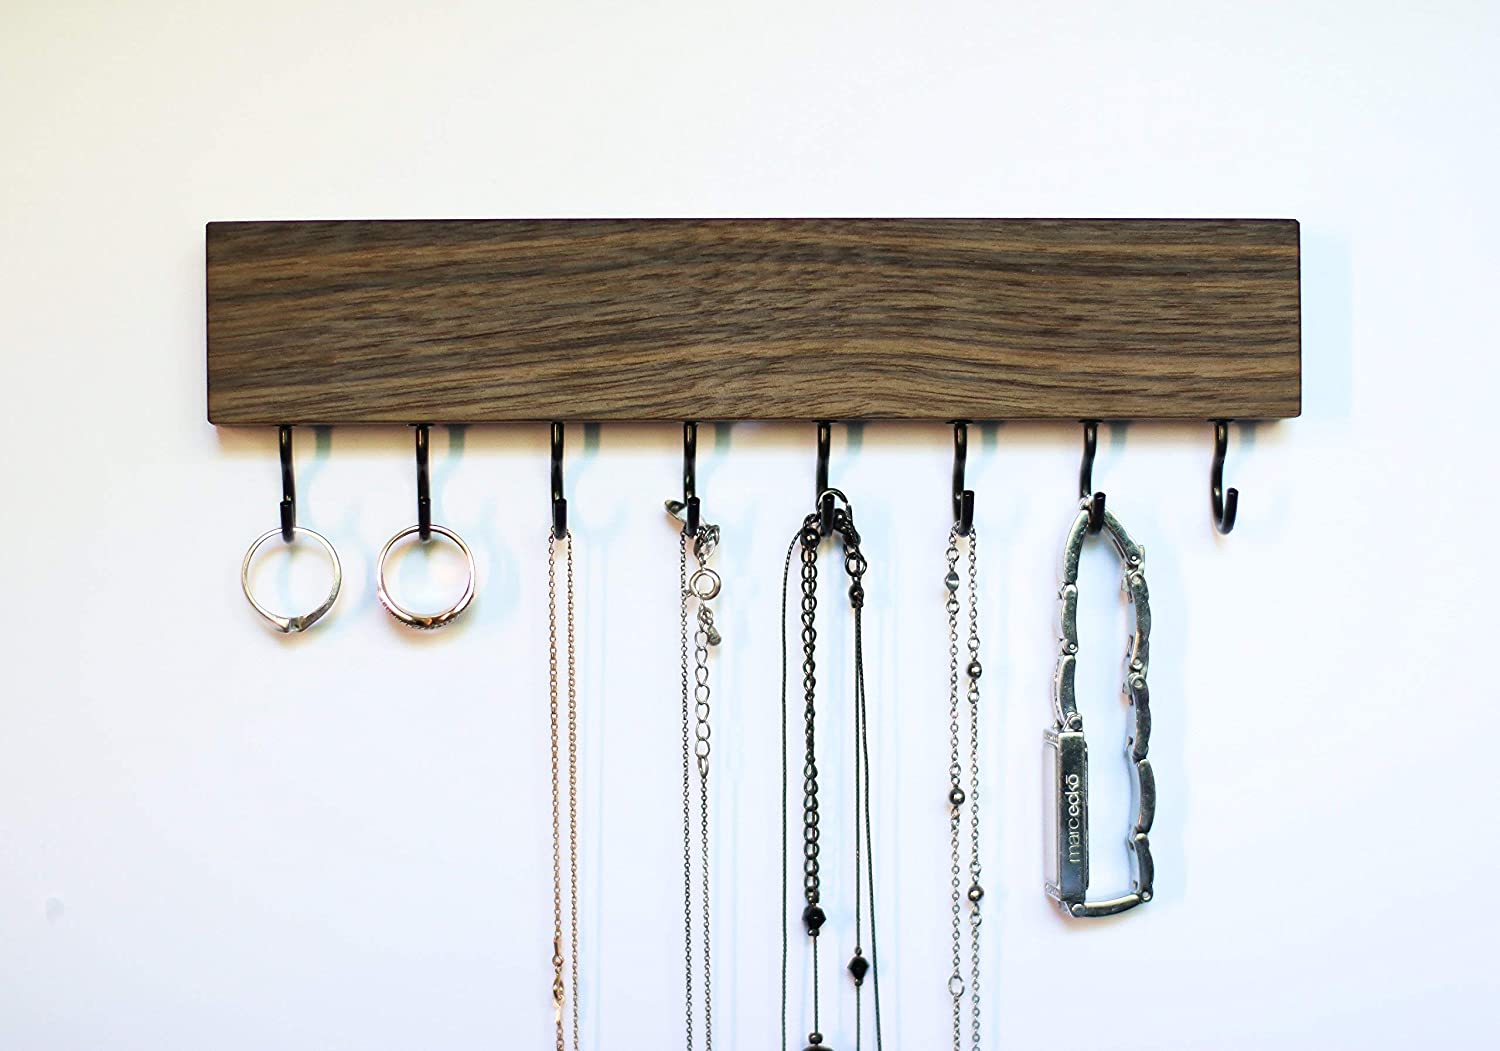 SOLID WALNUT WOOD Wall Mount Jewelry Organizer/Necklace Handmade Holder Hooks Key Holder Hanging Stand Rustic Decor/Best gift idea / 8 black hooks bottom